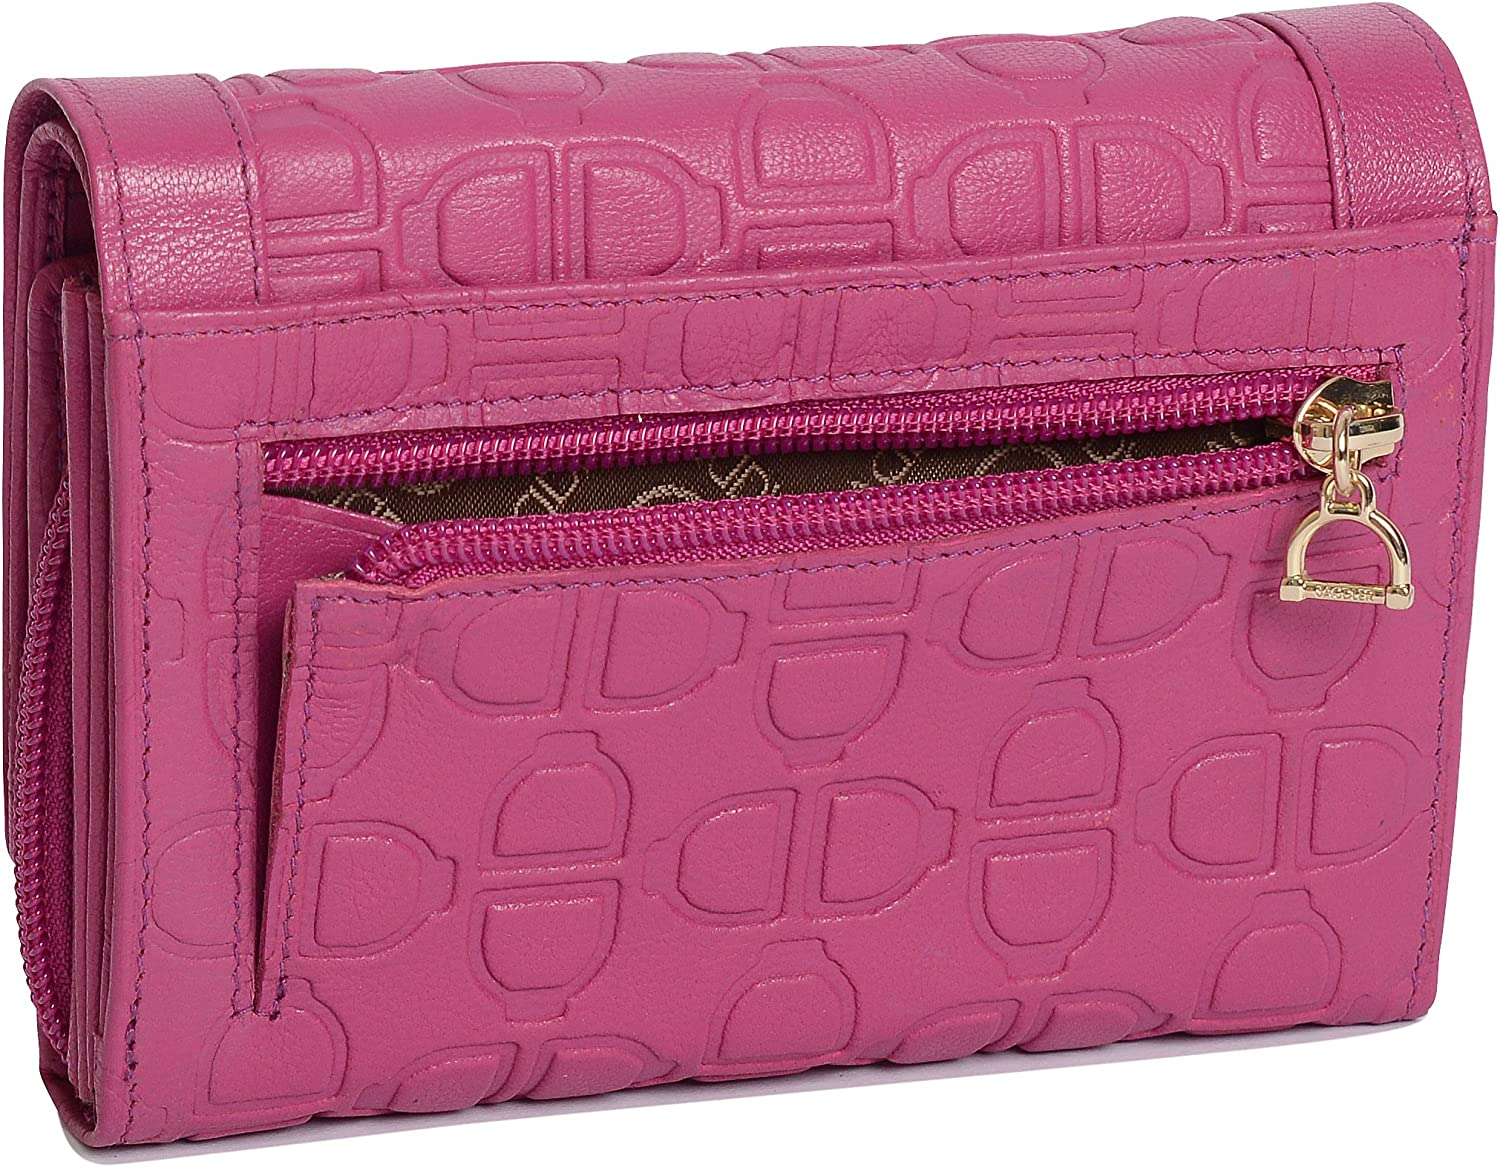 Fuchsia SADDLER Womens Medium Leather Credit Card Coin Purse Wallet with Zip Gift Boxed